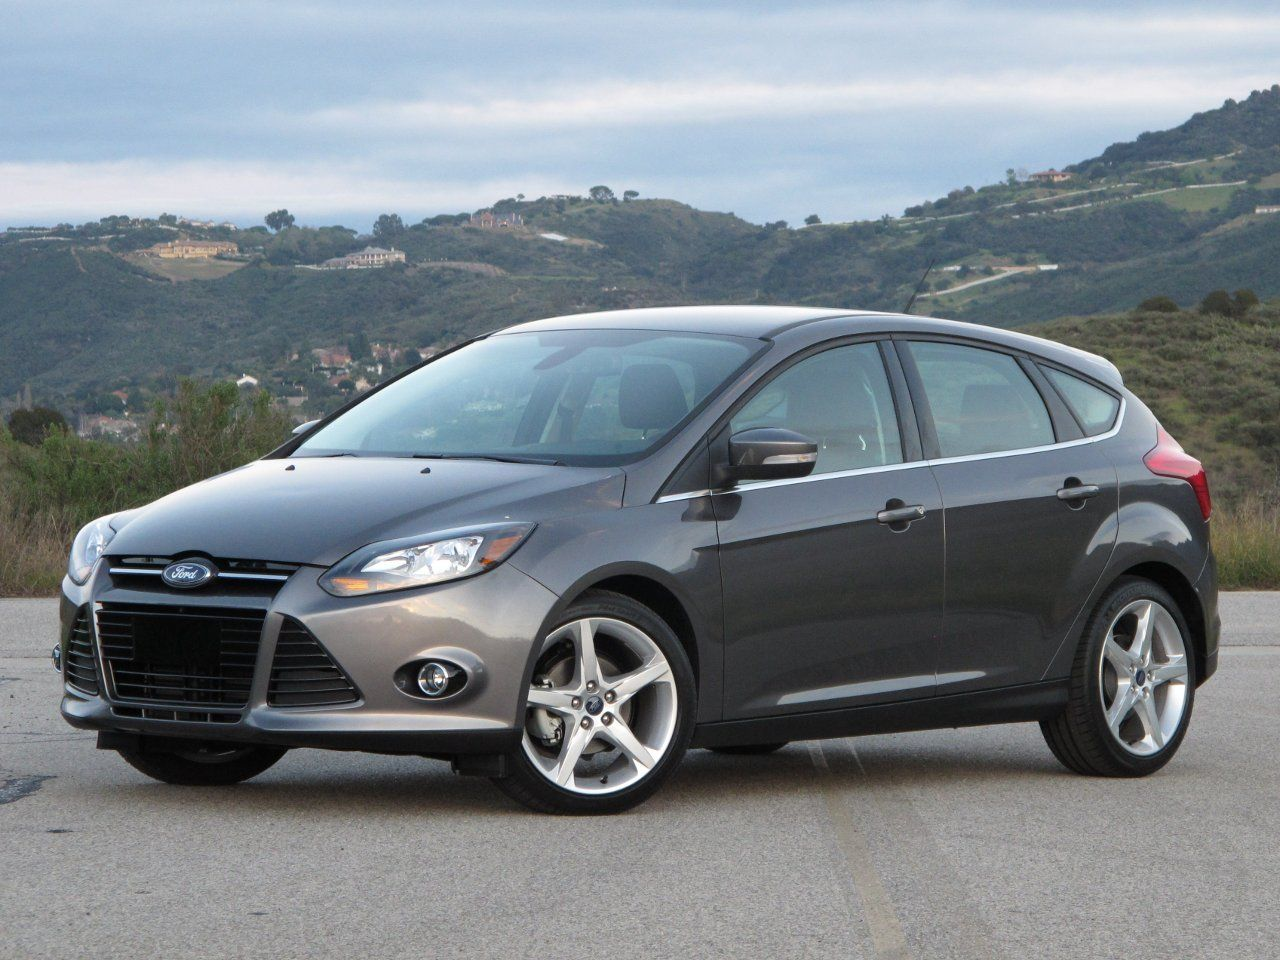 Consumer Reports Releases List Of Safest Used Cars Ford Focus Hatchback Ford Focus Mazda Cars